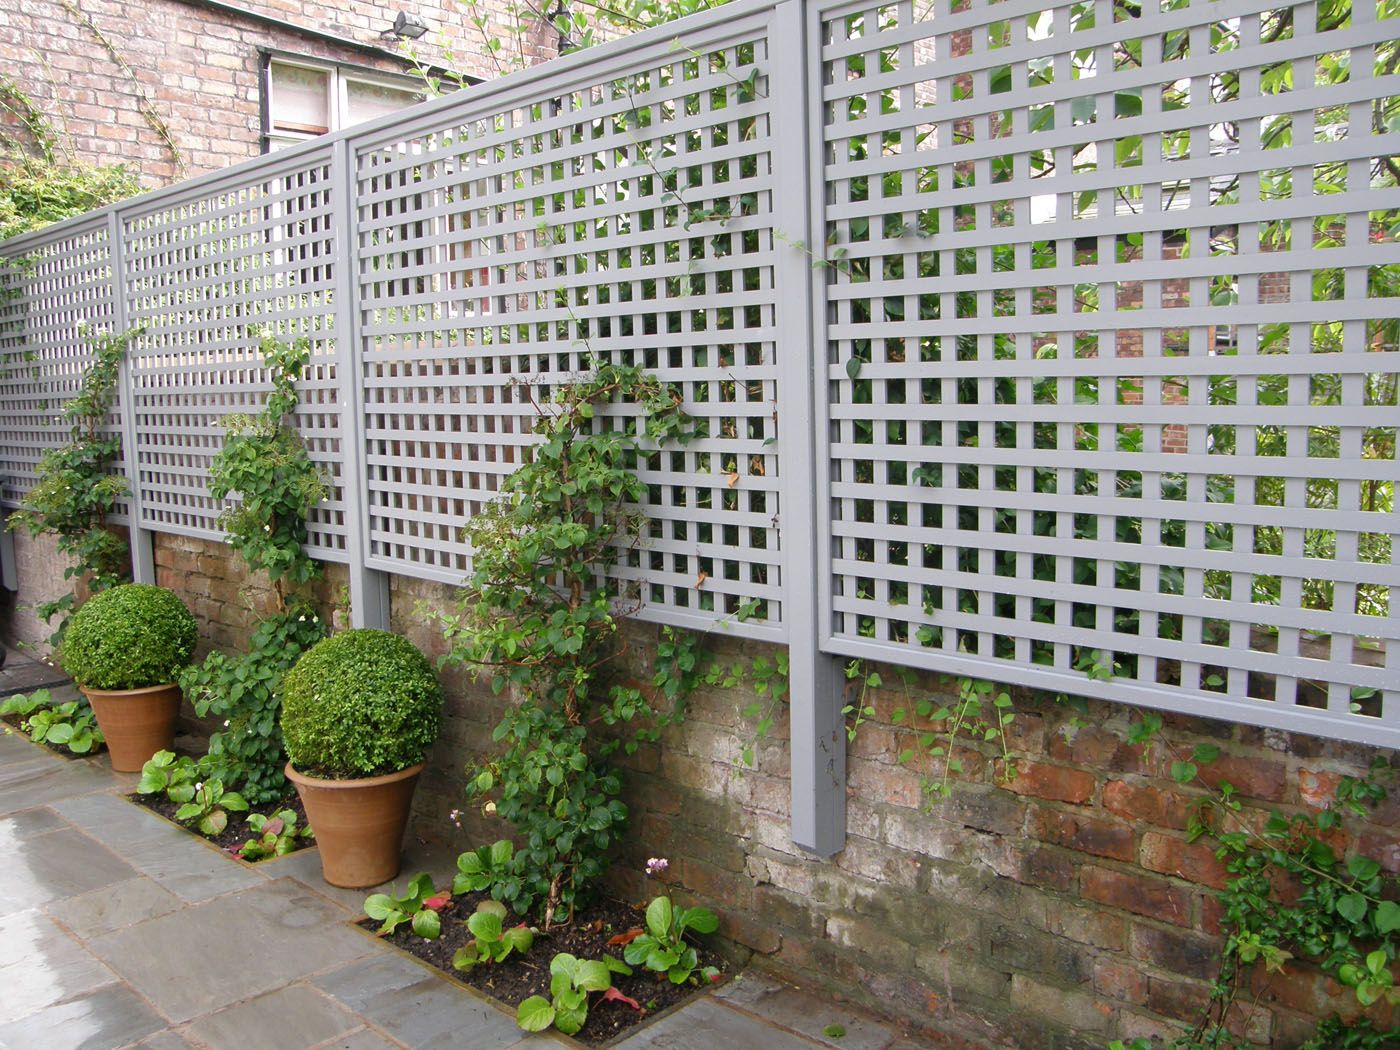 Creative uses for garden trellises greenery dwarf and for Wall trellis ideas